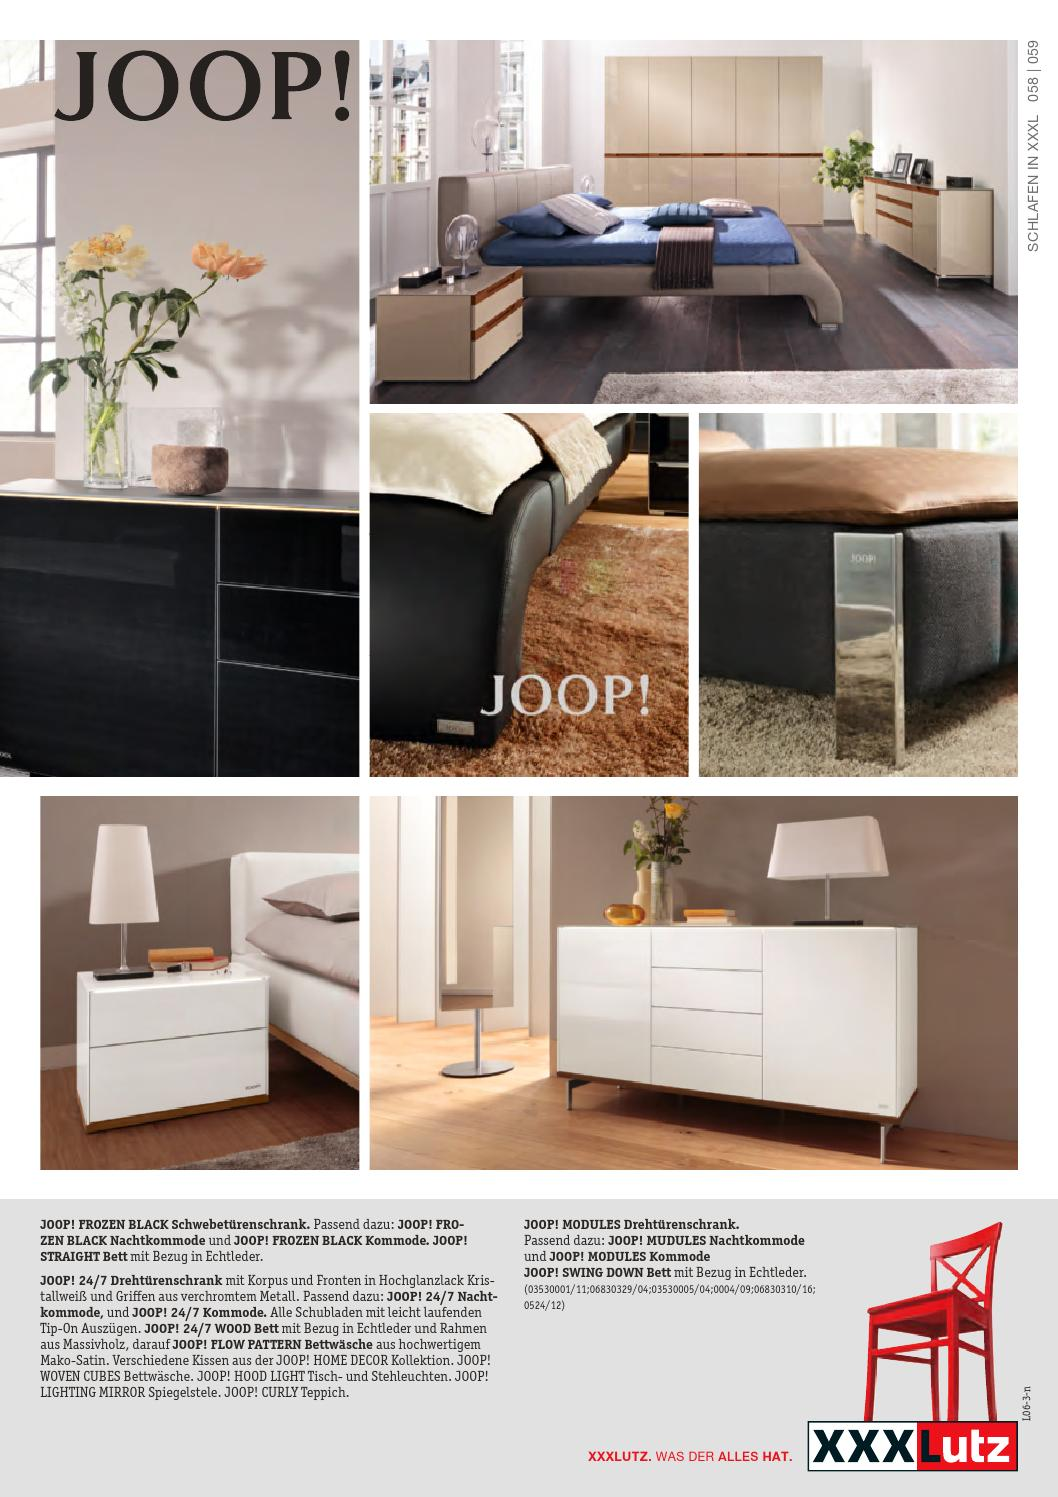 xxxl lutz katalog g ltig bis 30 05 by broshuri issuu. Black Bedroom Furniture Sets. Home Design Ideas